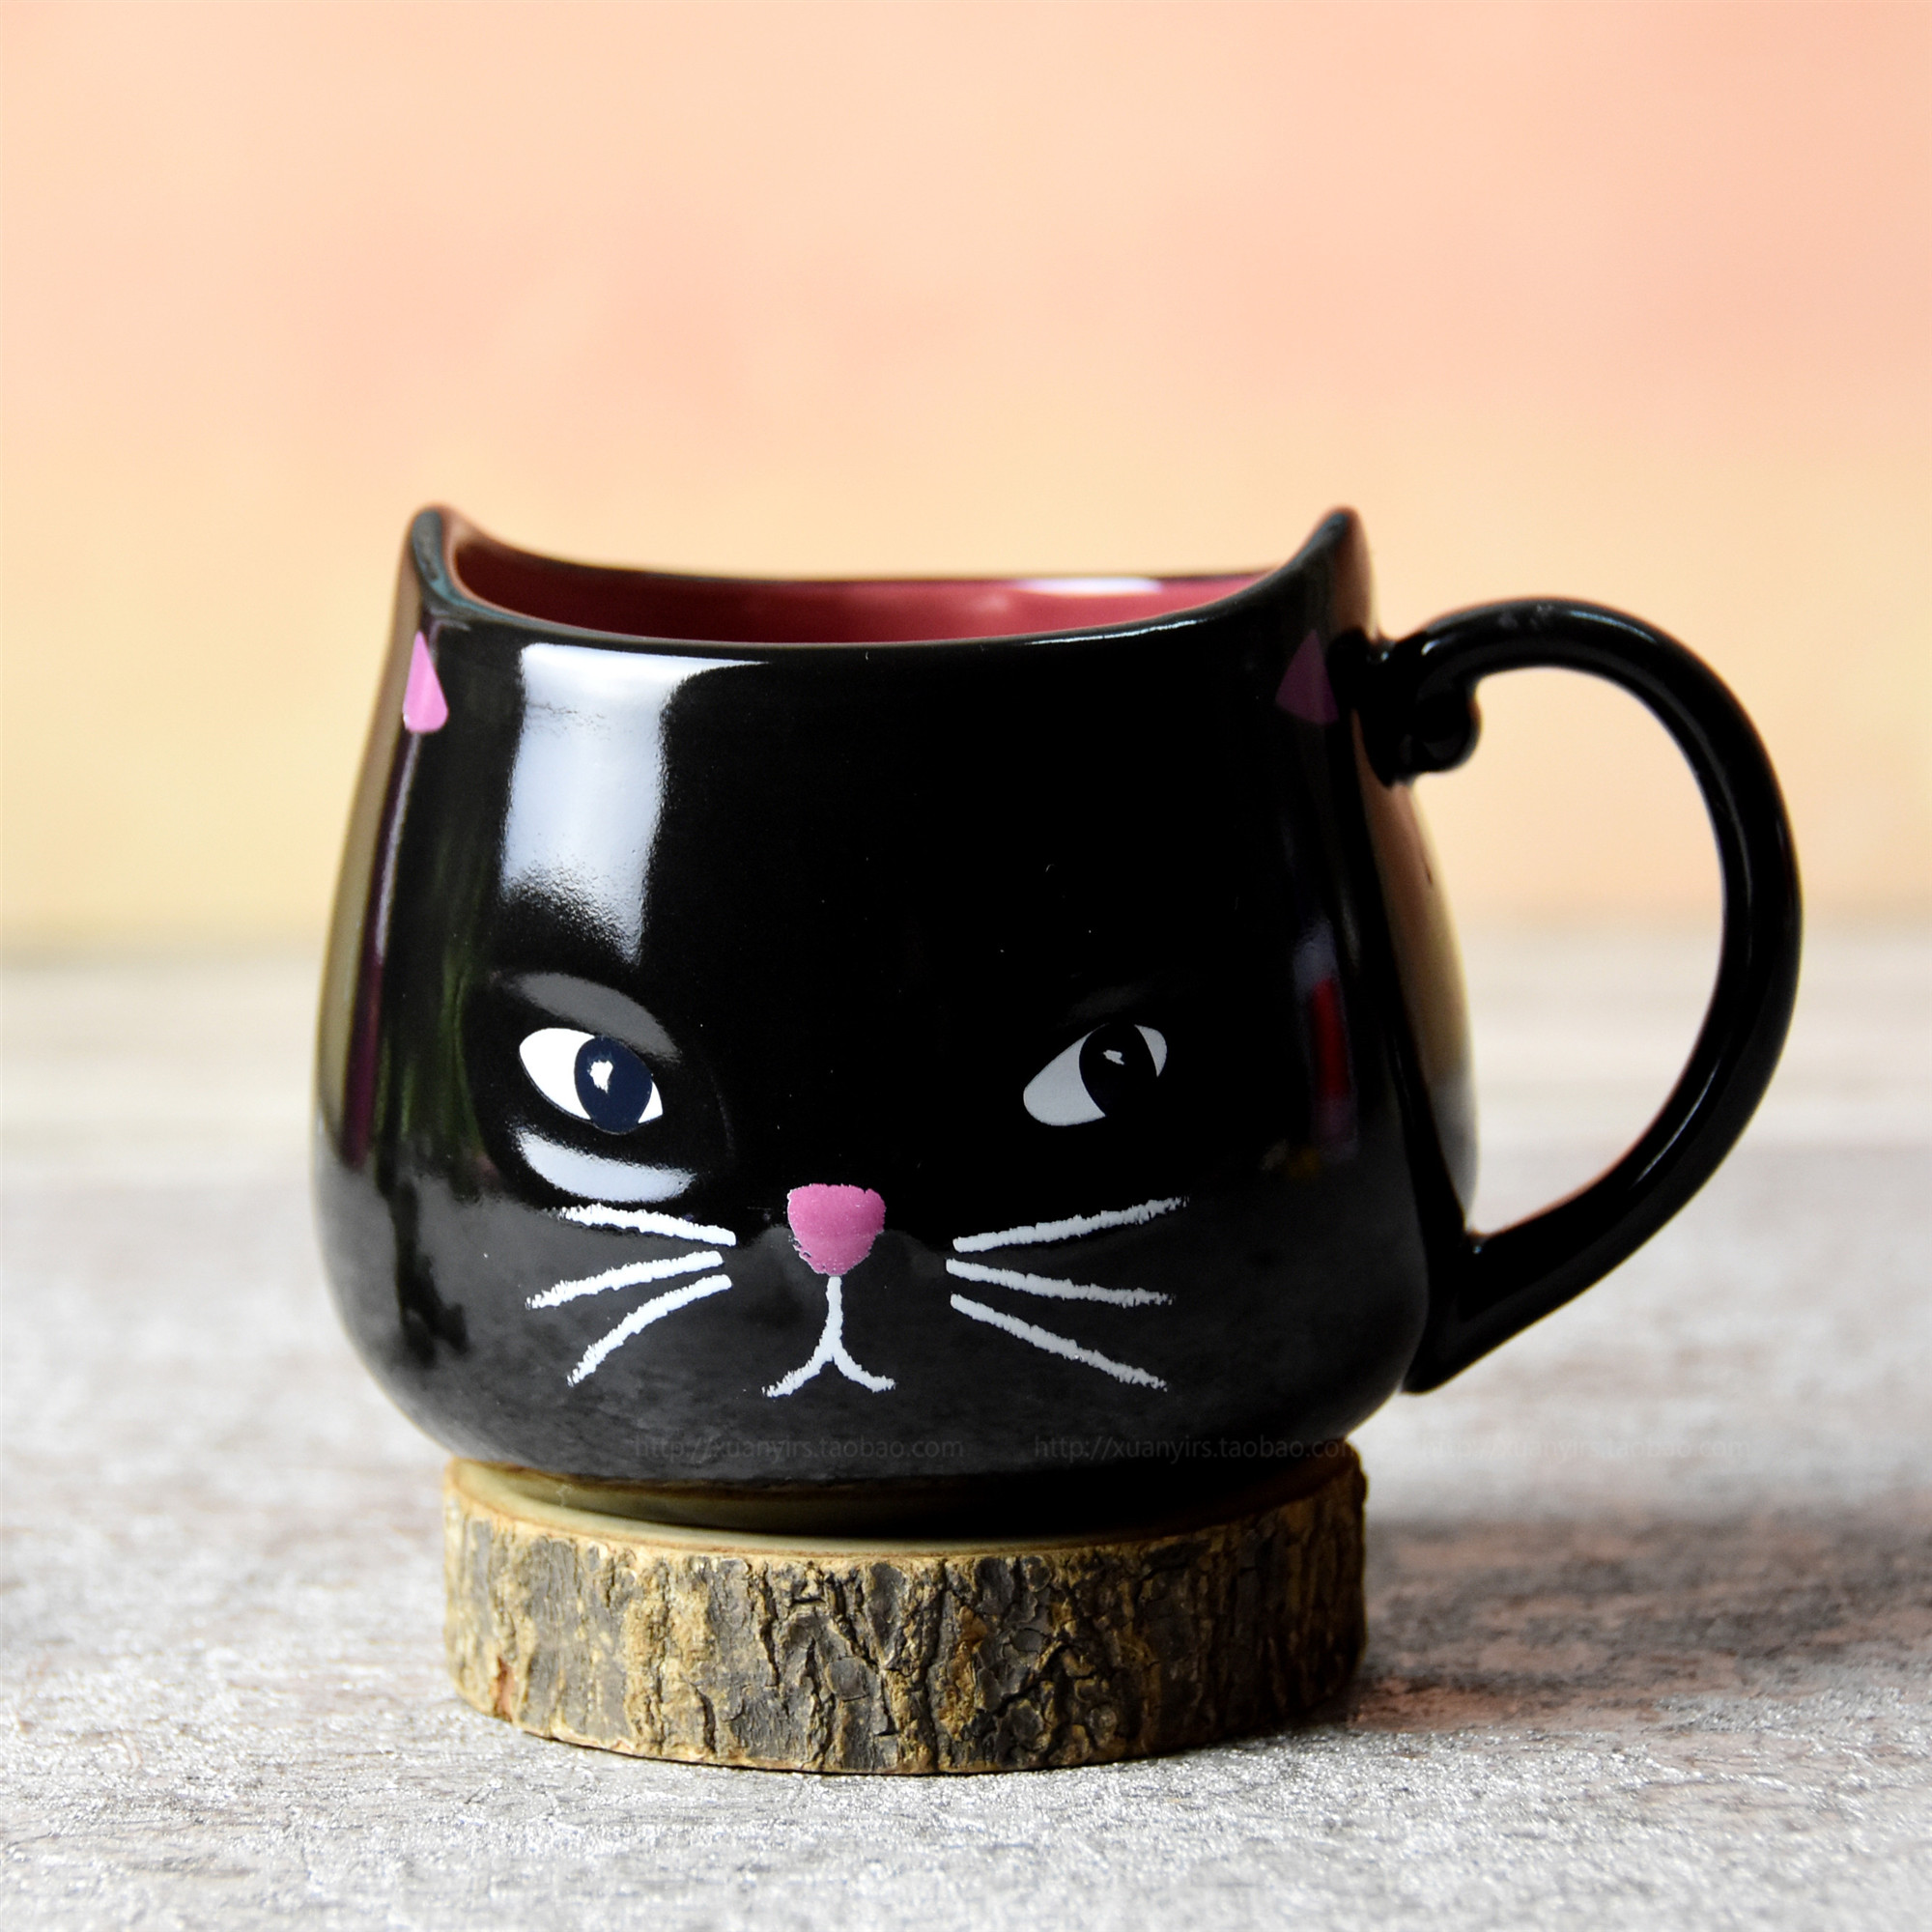 Ceramic Cute Cat Mugs Coffee Tea Milk Animal <font><b>Cups</b></font> With Handle 400ml Drinkware Nice Gifts <font><b>coffe</b></font> <font><b>cup</b></font> Cartoon coffee mug image